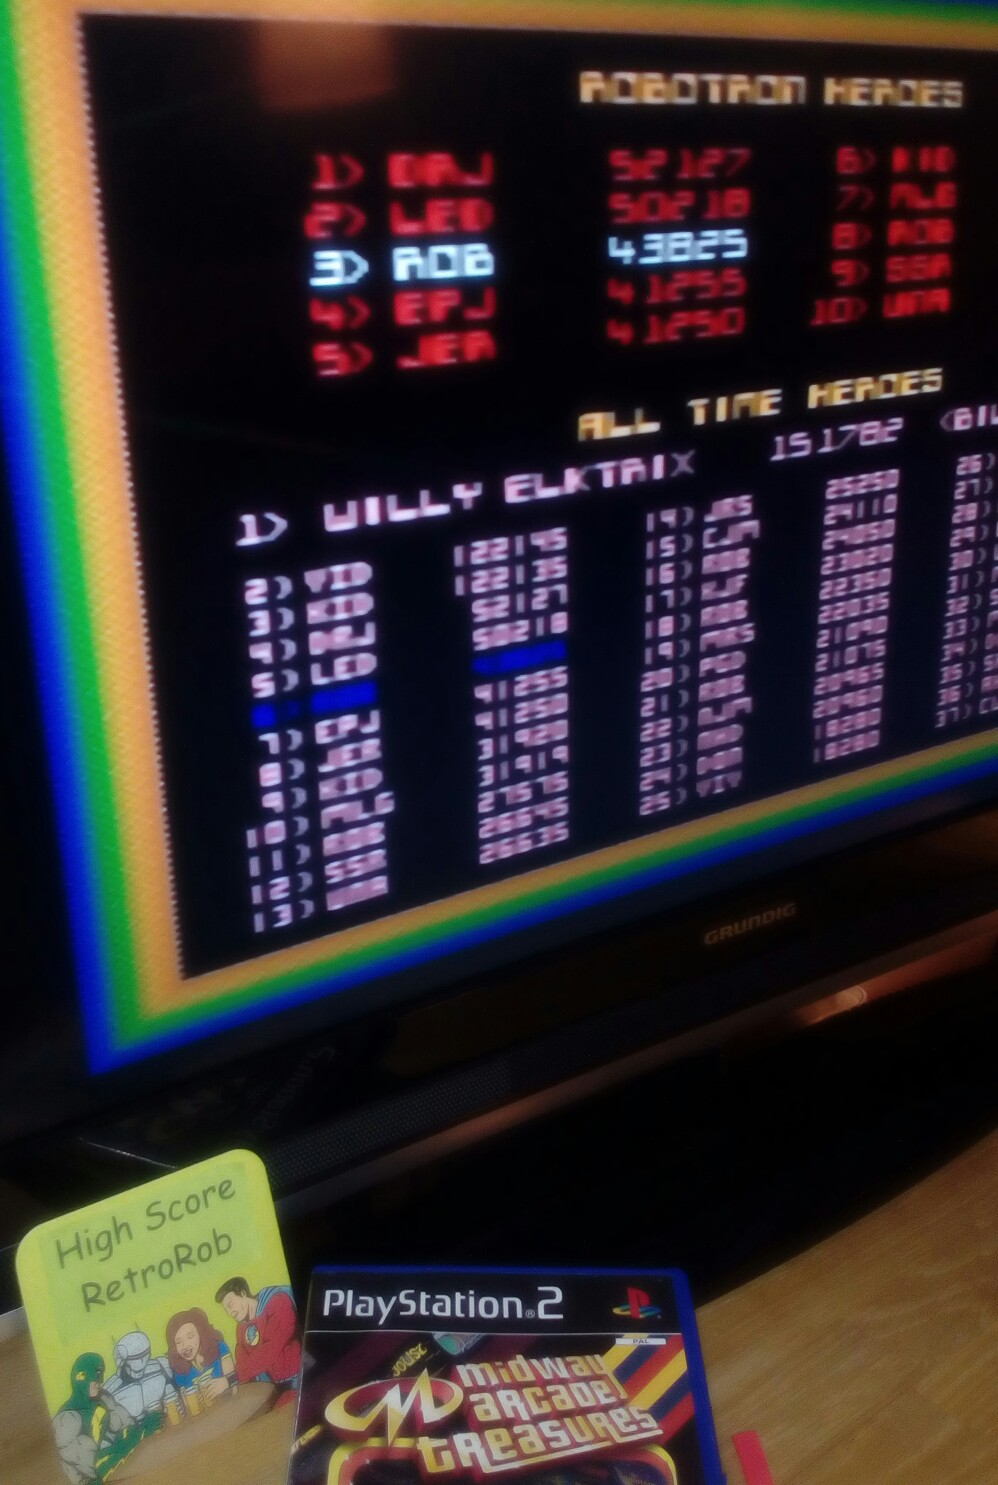 RetroRob: Midway Arcade Treasures: Robotron 2084 (Playstation 2) 43,825 points on 2018-09-03 15:01:37